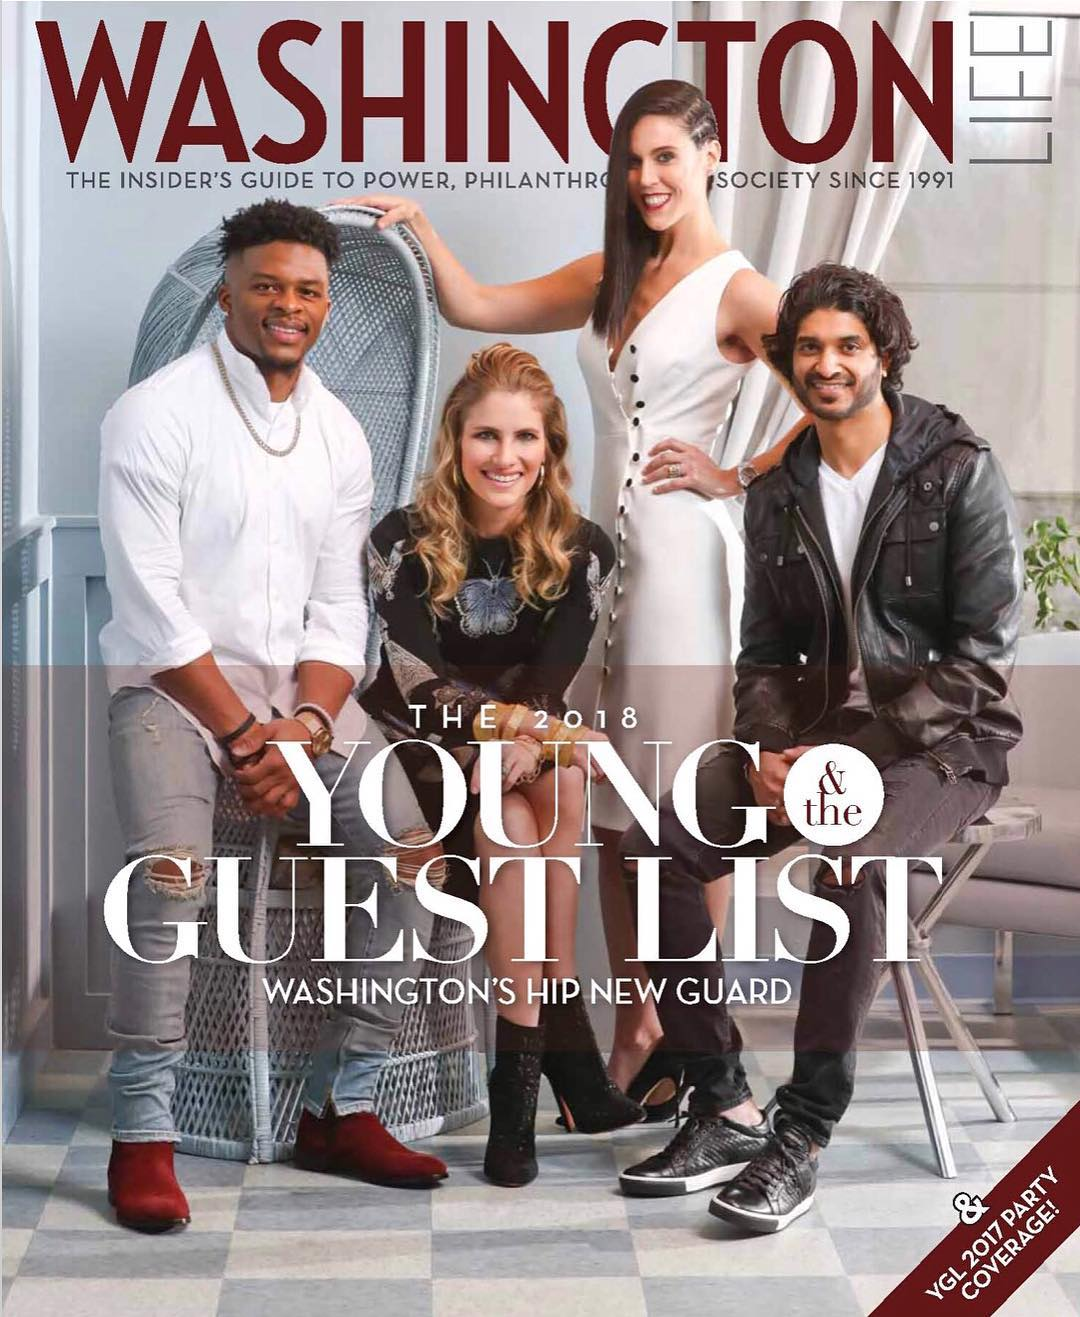 Morra Designs, press, Washington Life magazine, placement